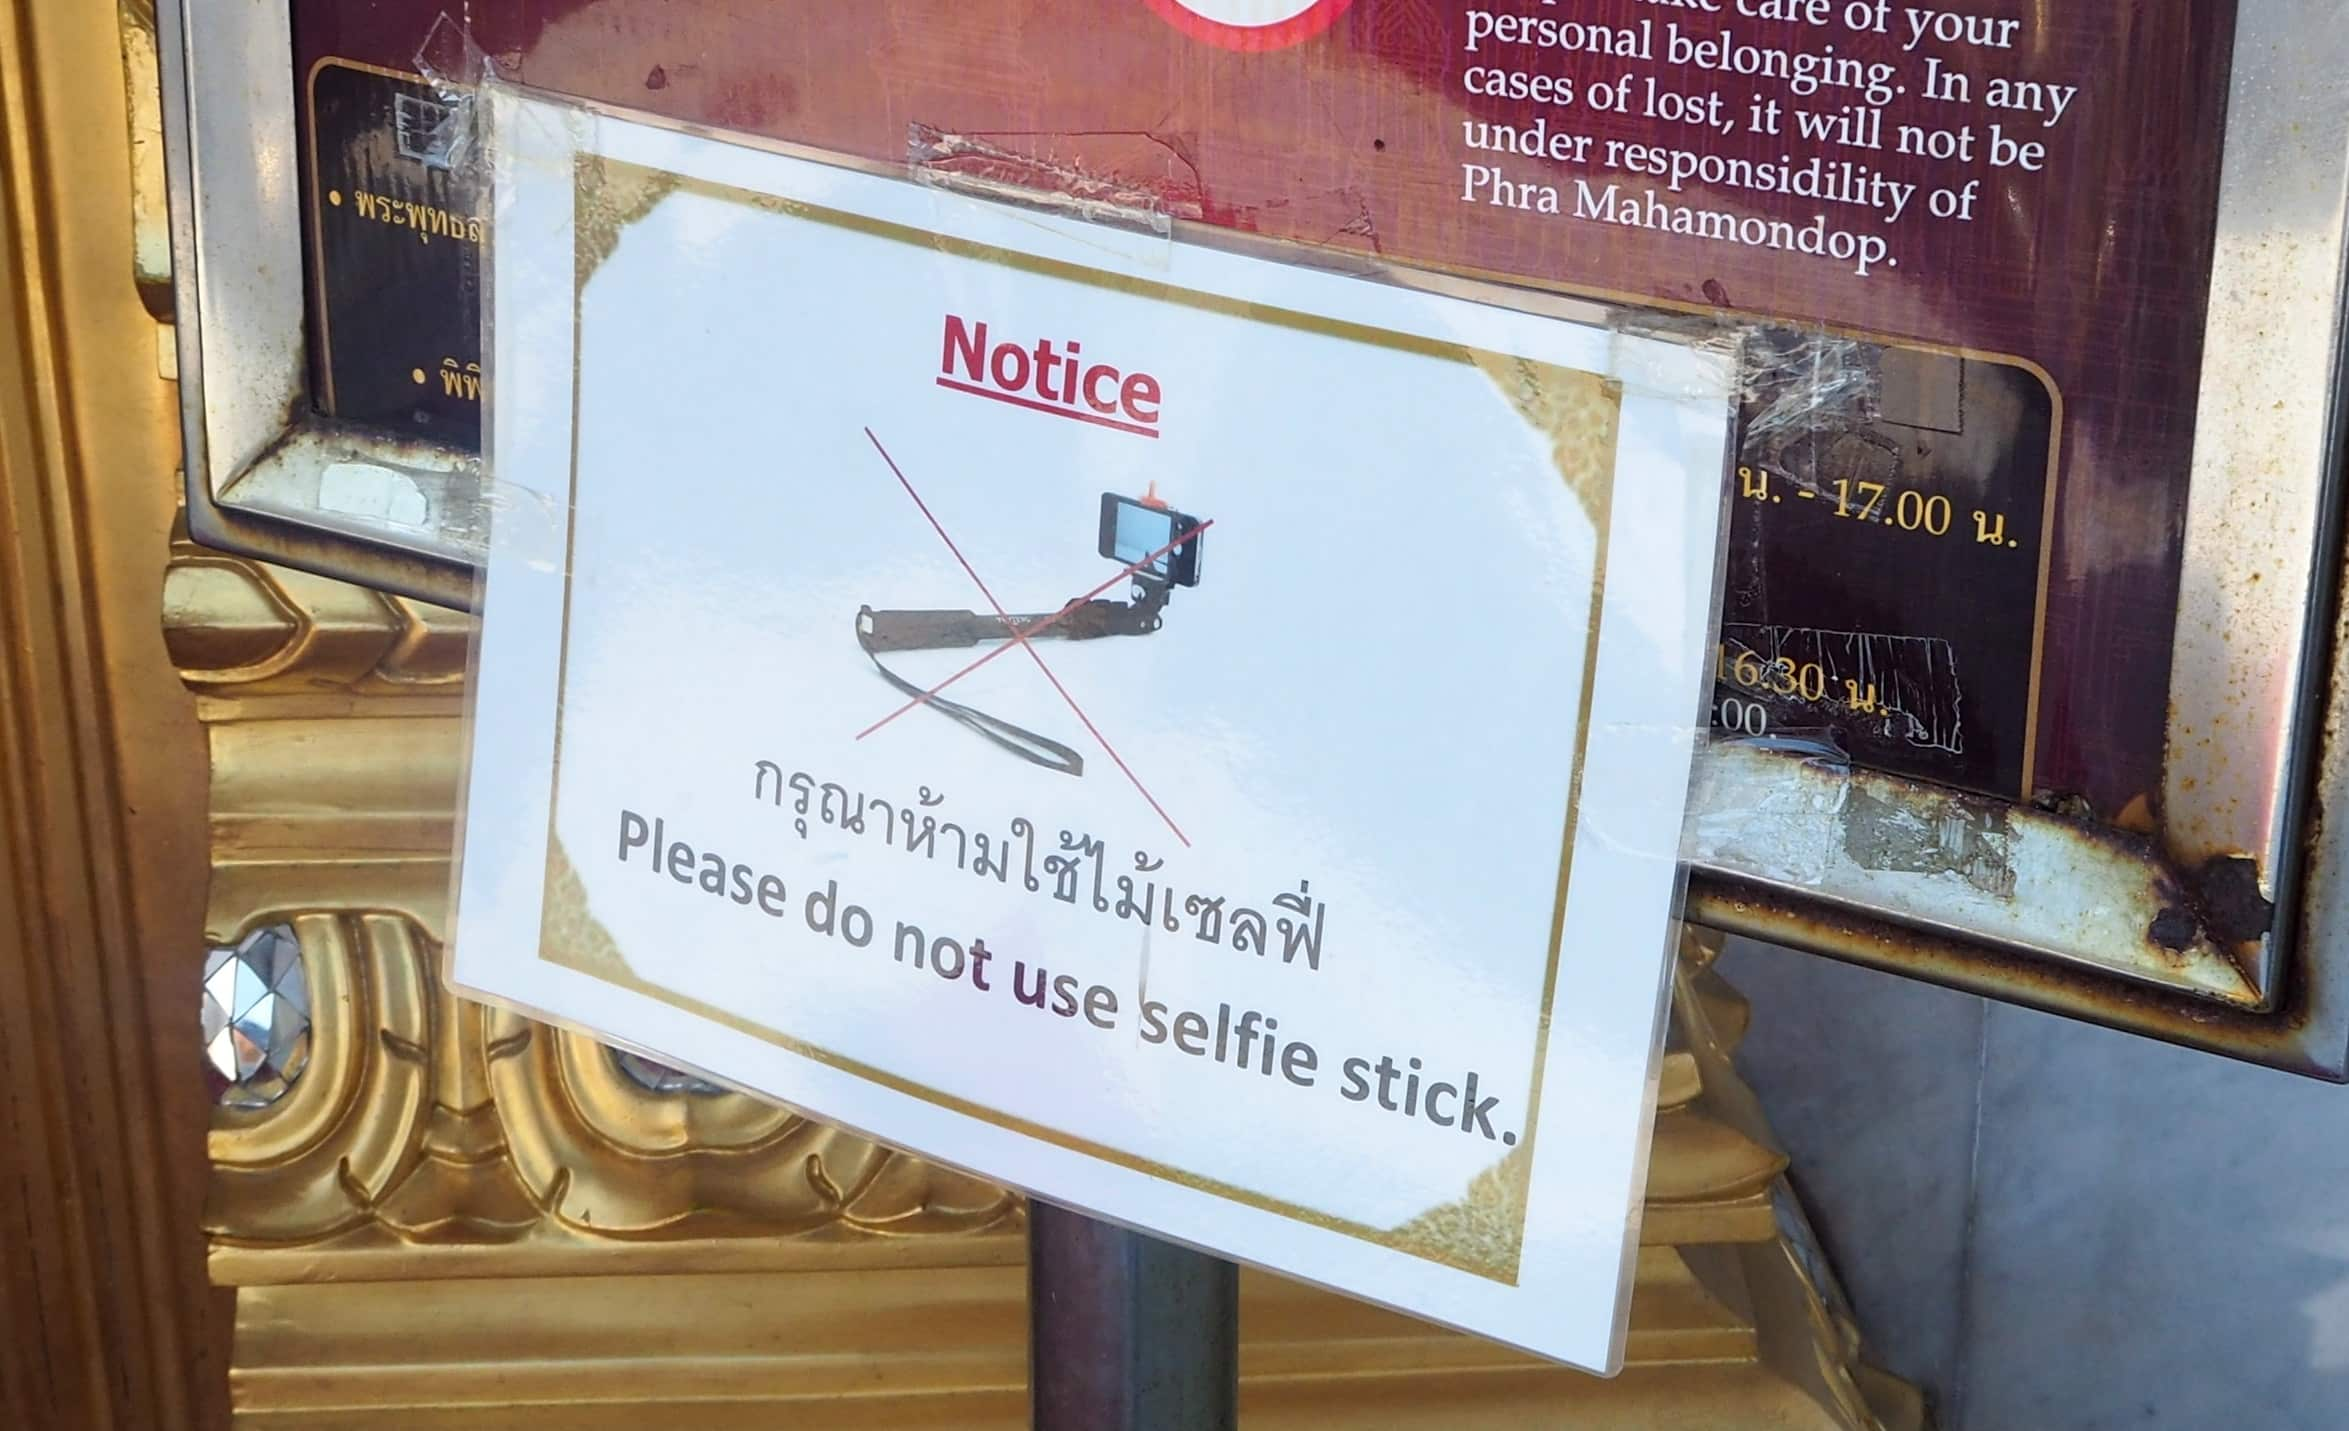 No Selfie Sticks sign (re copywriting)